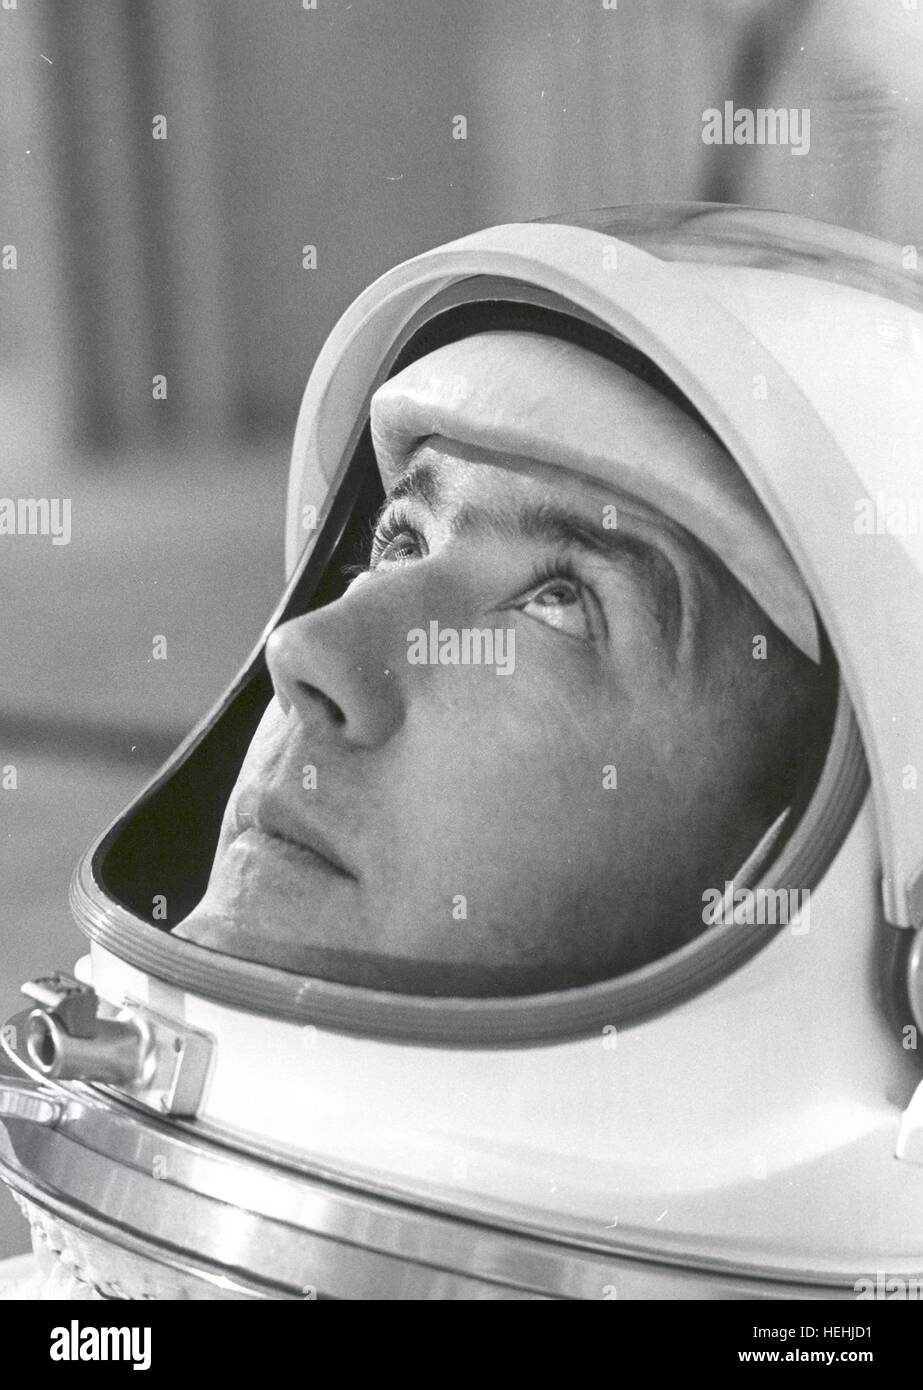 NASA astronaut Jim McDivitt suits up in preparation for weight and balance training tests before the Gemini IV mission - Stock Image